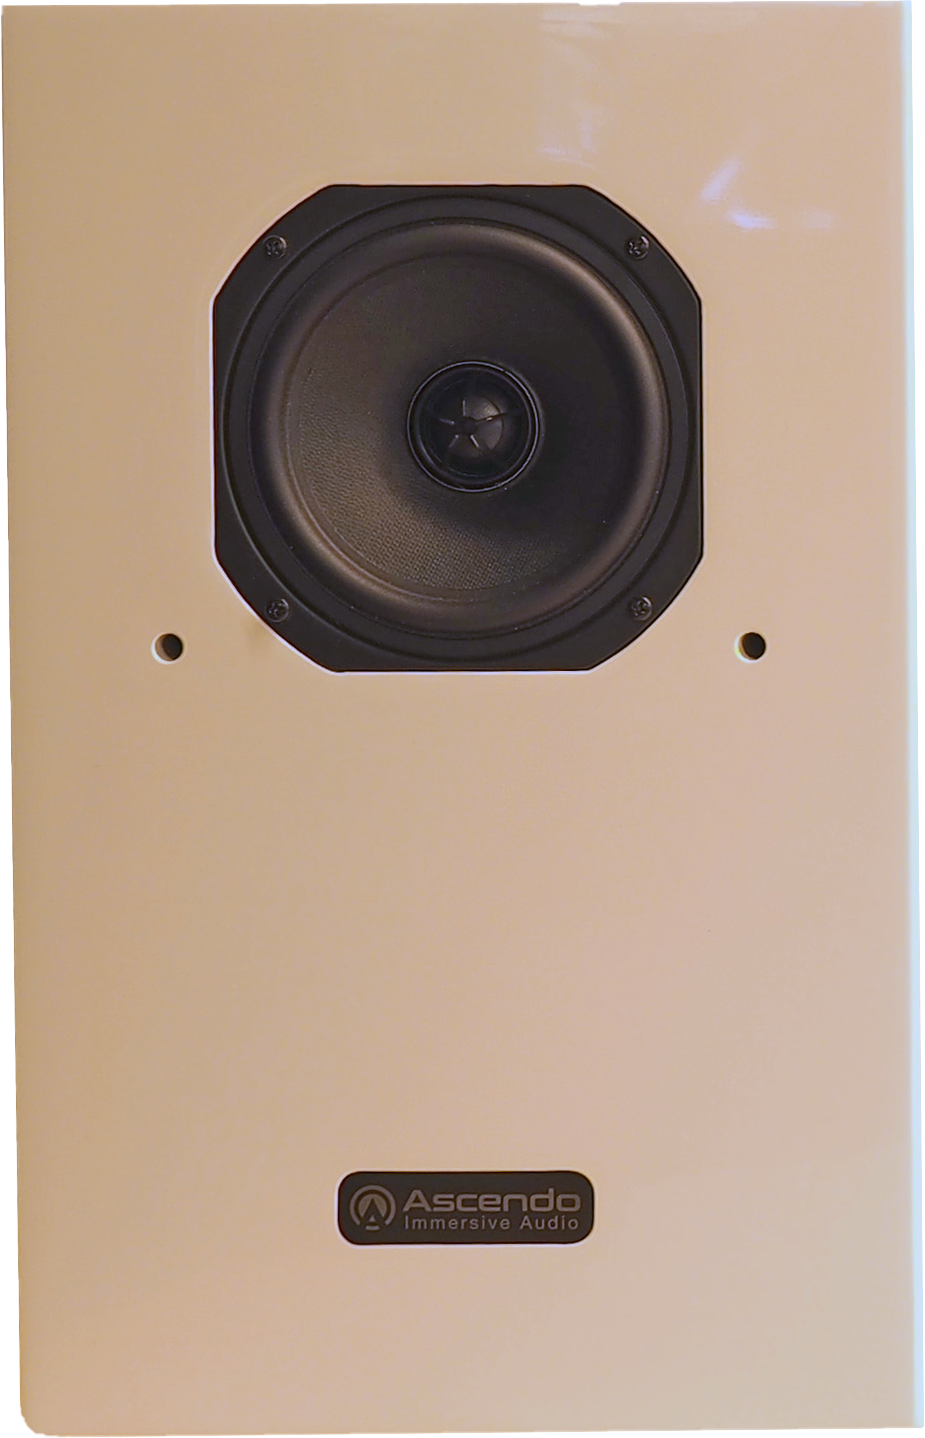 Ascendo Immersive Audio CCRM5-P Passive Immersive Audio monitor Glossy White